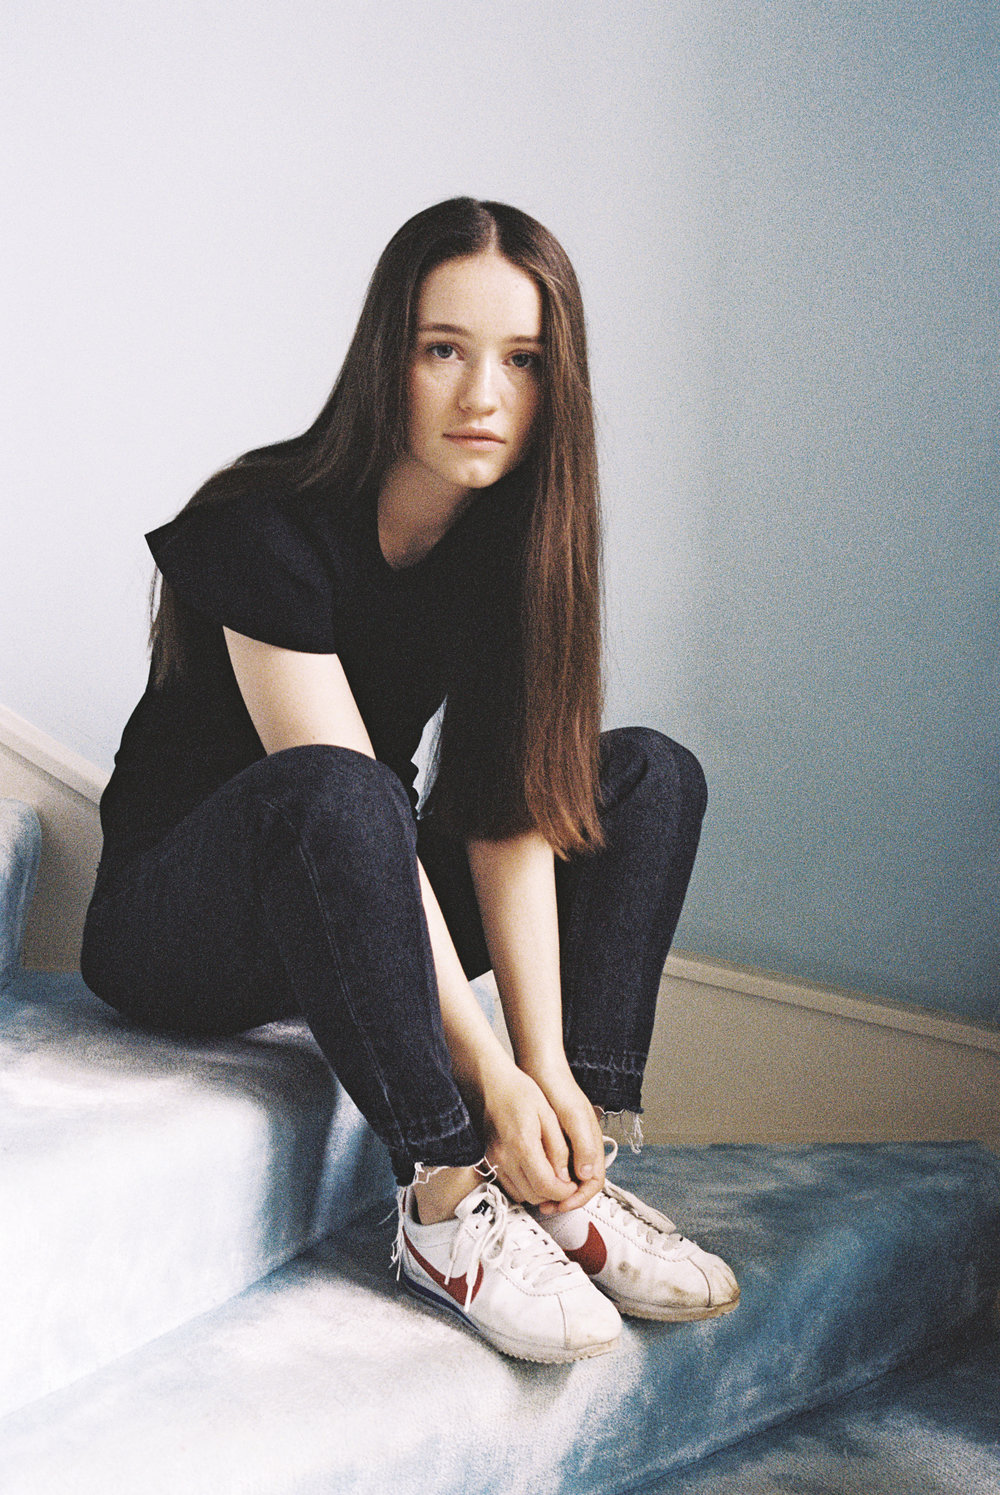 Sigrid announces       2018 UK Tour    - Following on from her sold out tour earlier this year, Sigrid has announced much larger dates for the end of the year which includes a massive show at Brixton Academy.